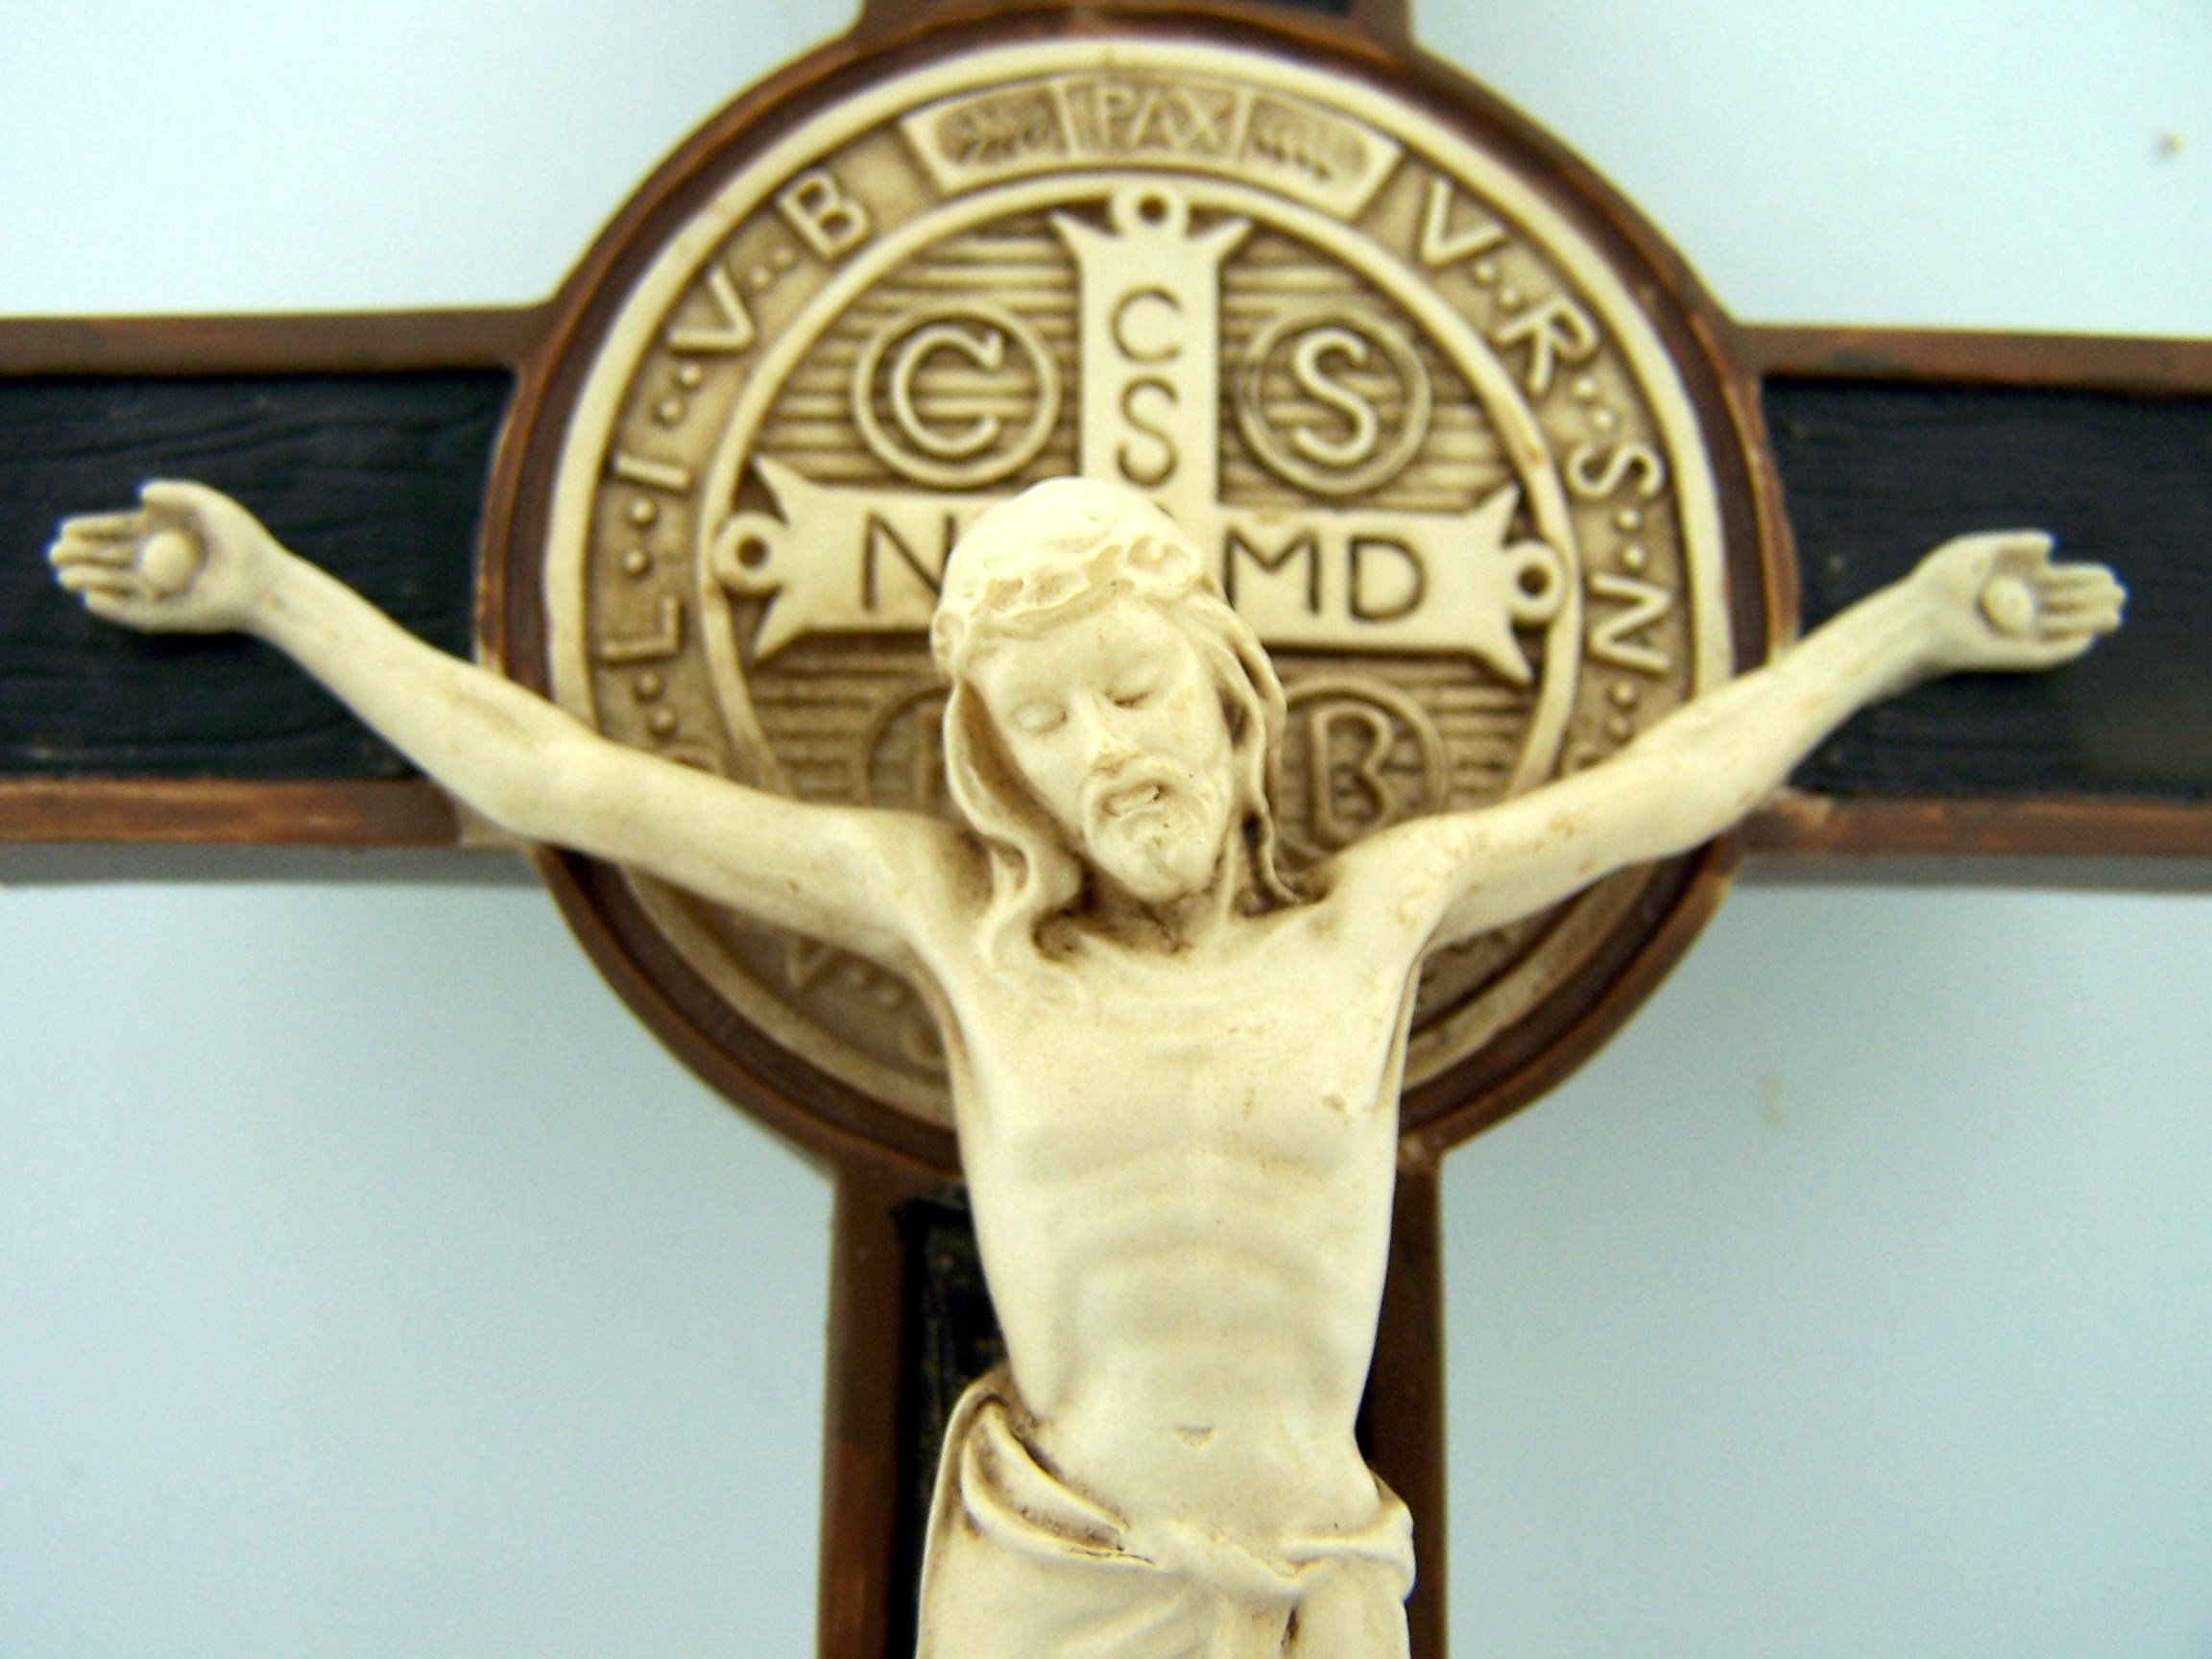 Saint Benedict Cross Crucifix Medal Wall Exocism Ivory Tone 7 Inch Carved Detail